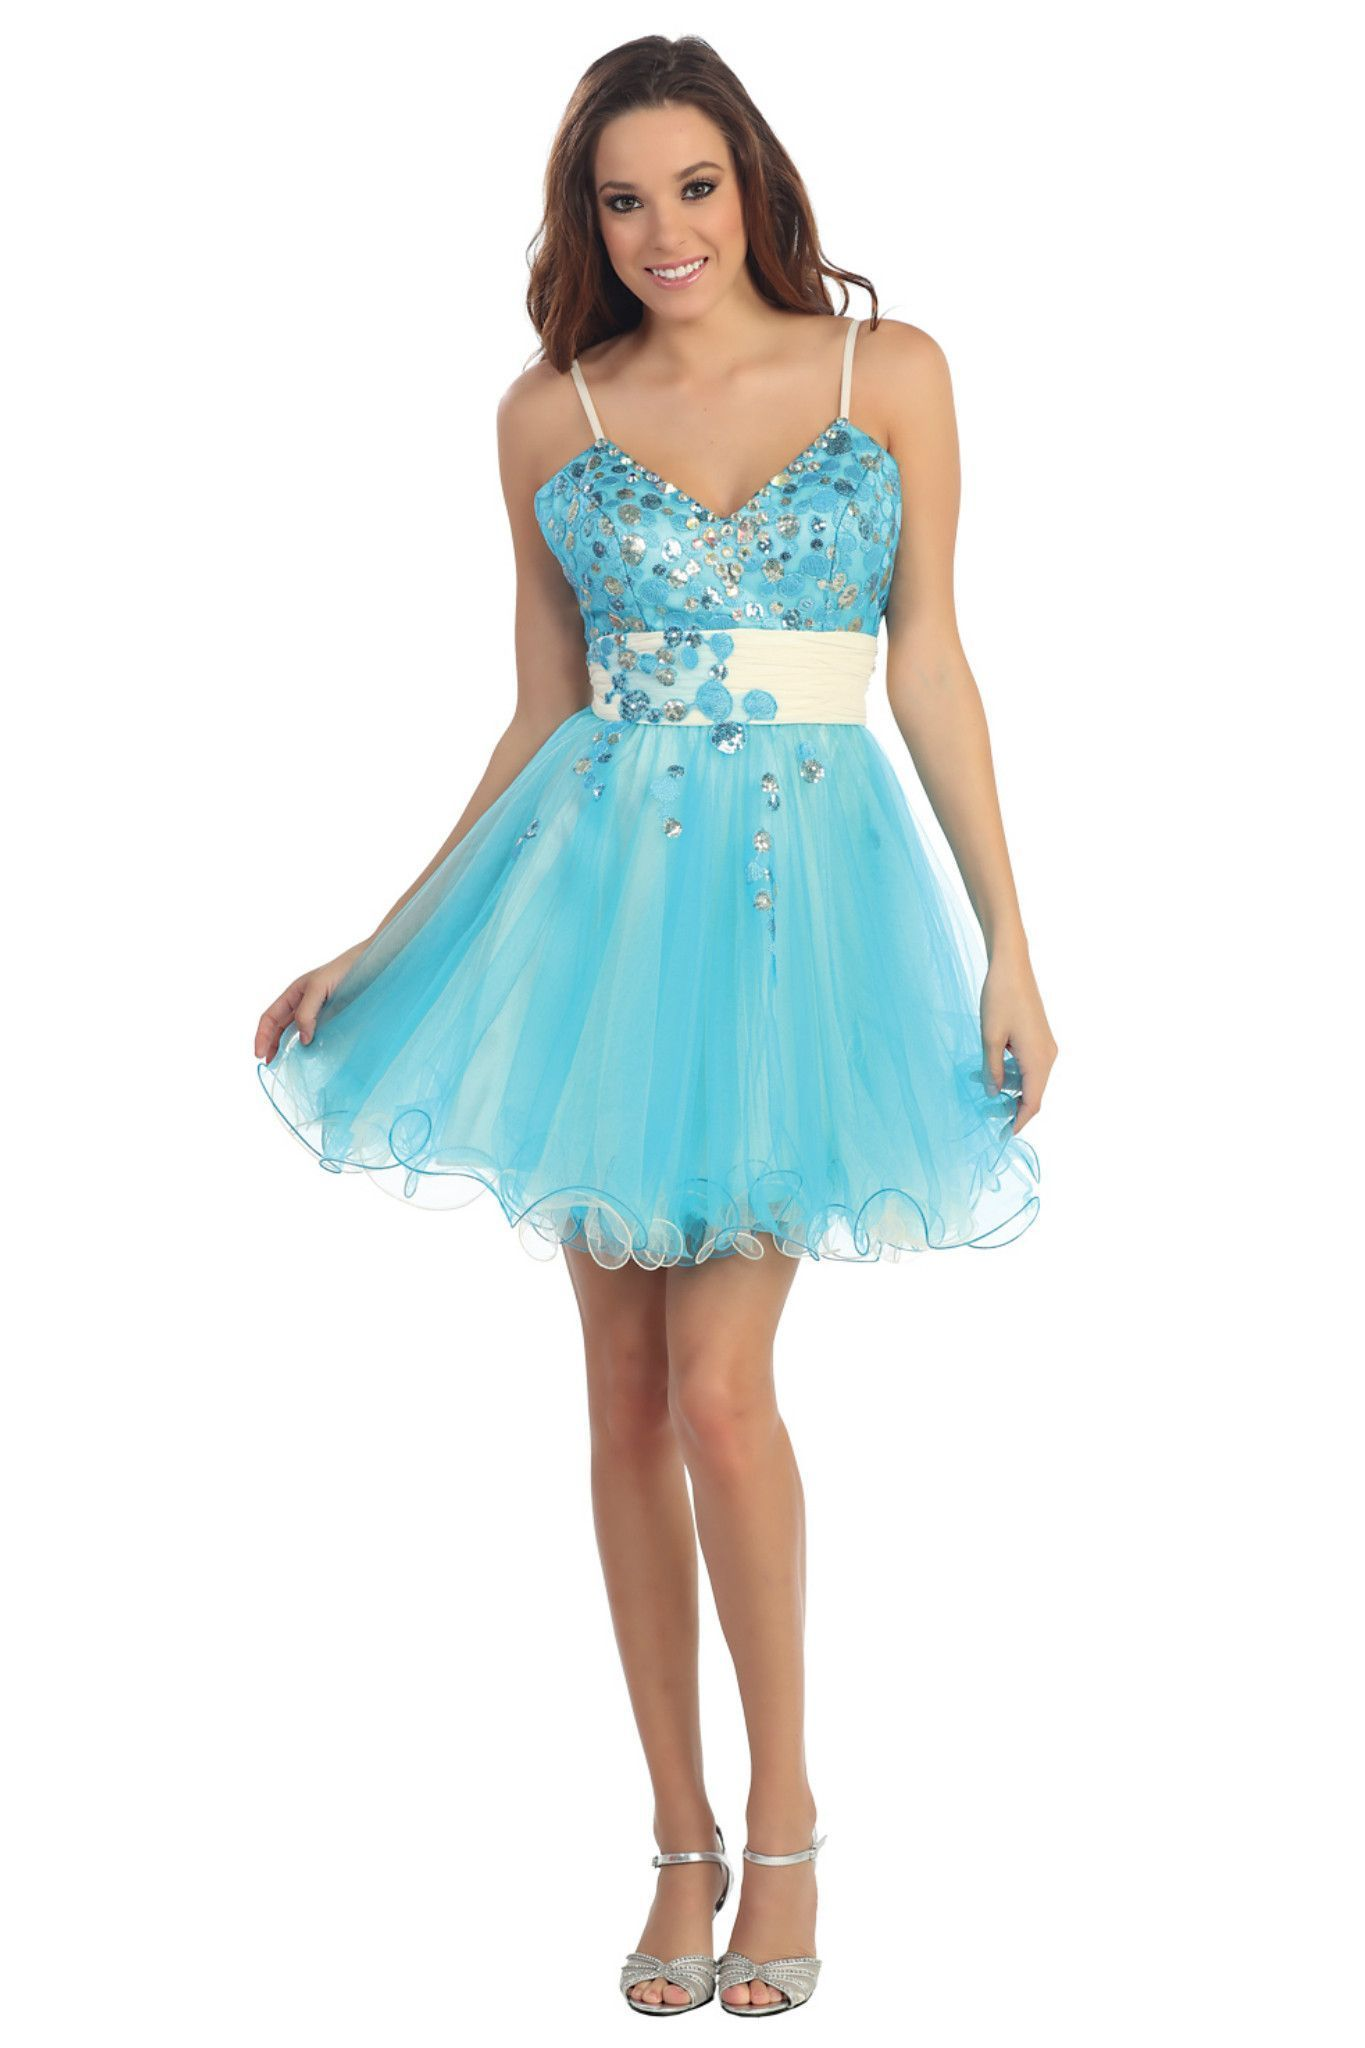 Lovely Homecoming Short Cocktail Fun Flirty Spaghetti Strap Prom ...